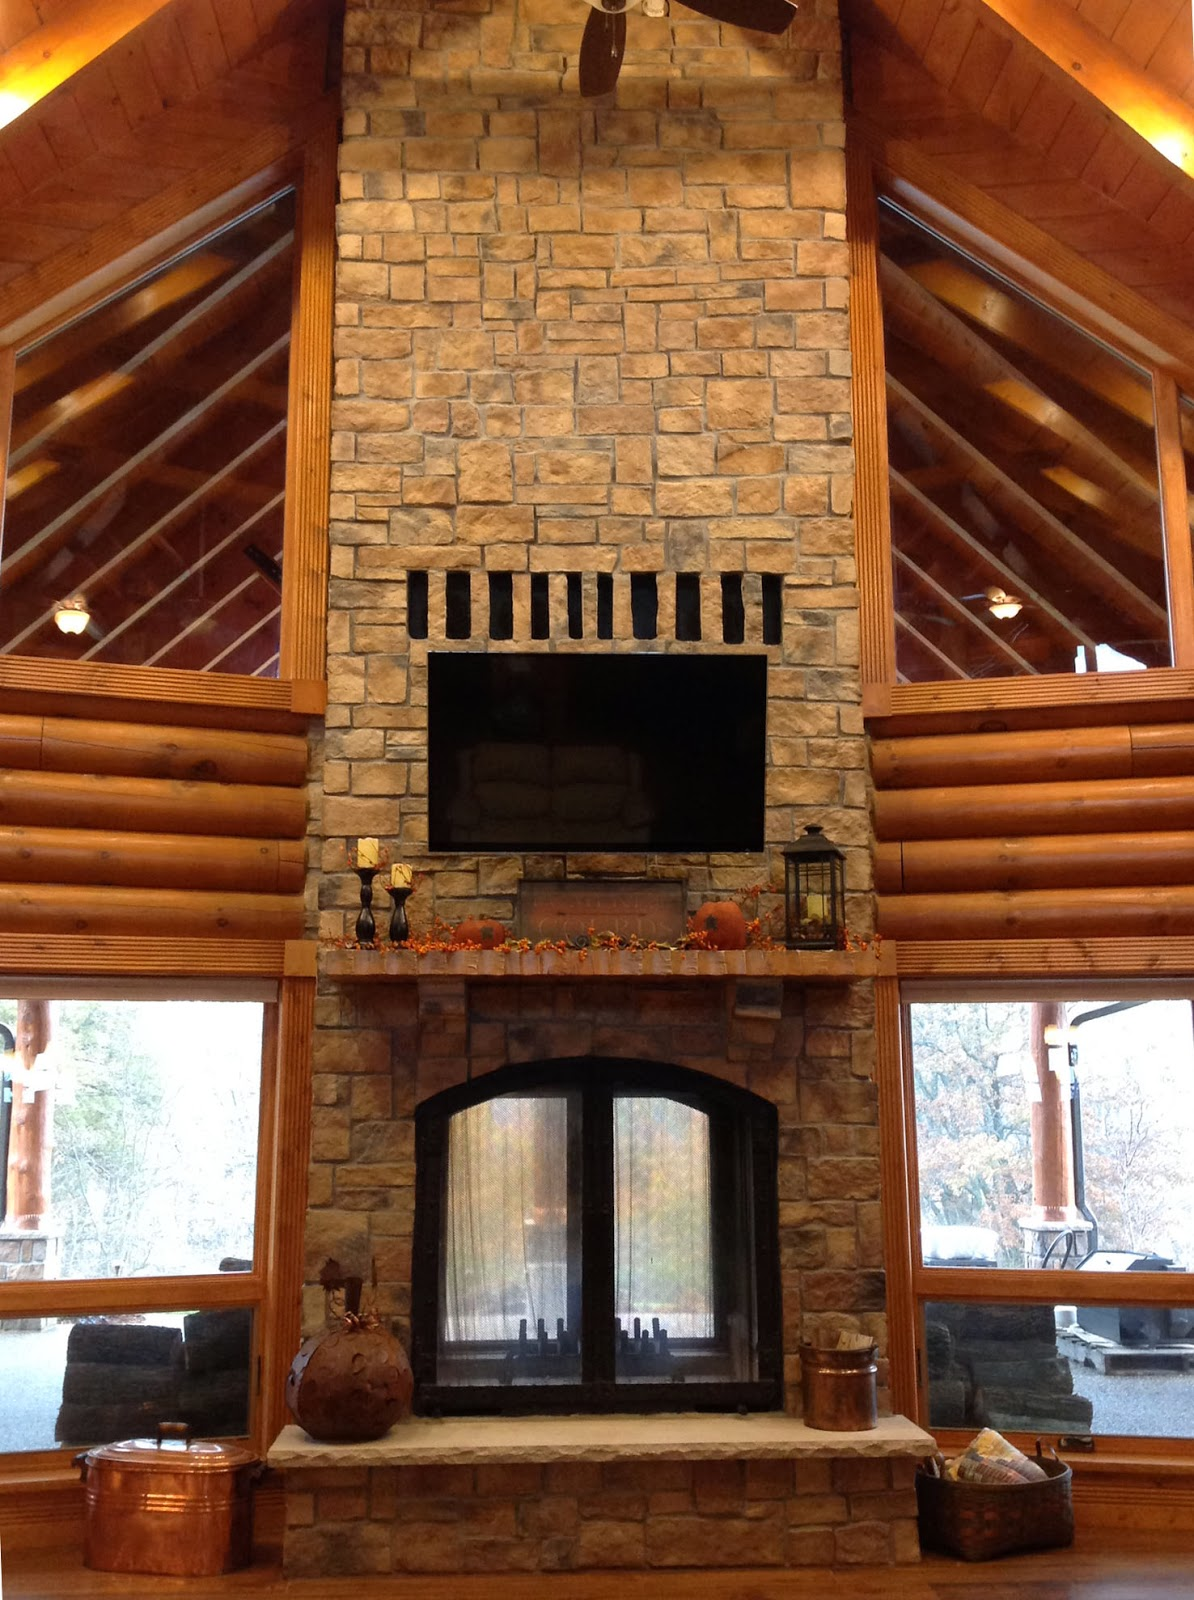 Indoor Outdoor Fireplace Double Sided - Home Design Inside